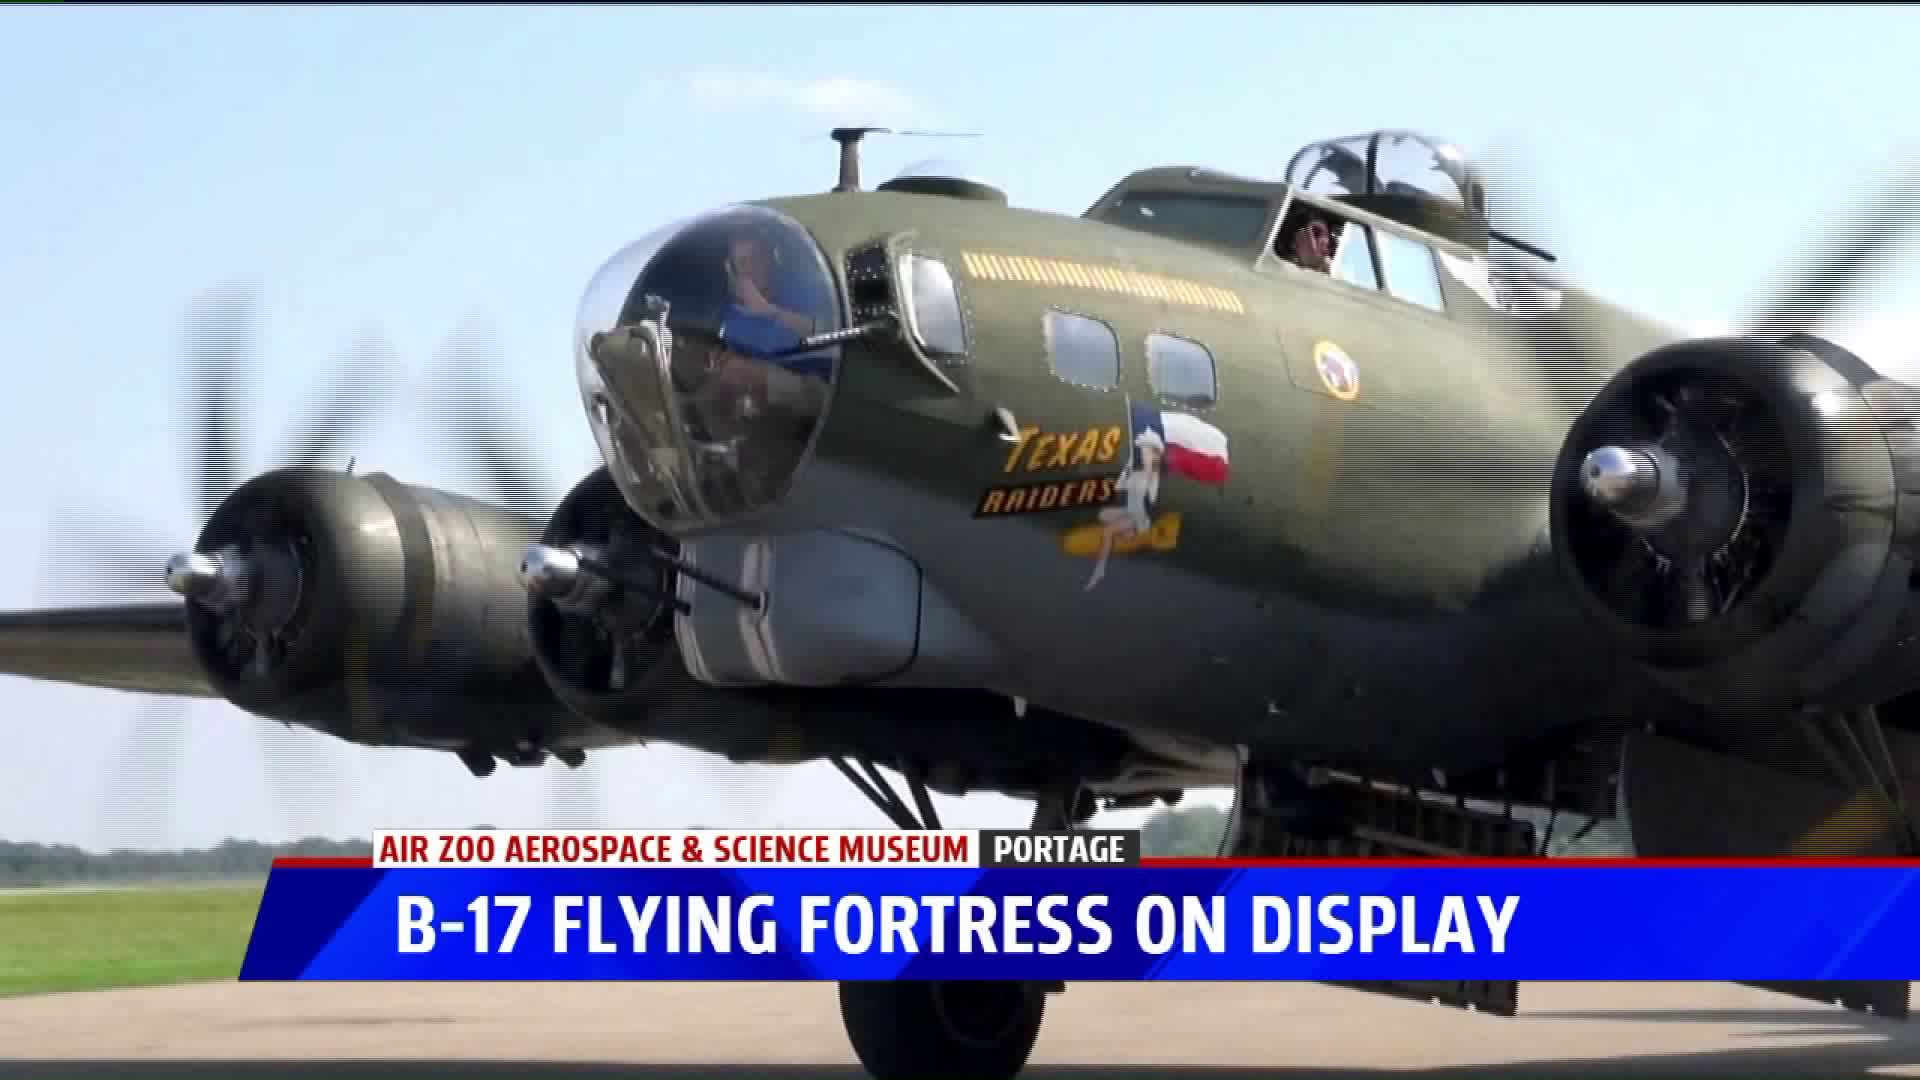 Fans Flock To Air Zoo To See Legendary B17 Flying Fortress Flown